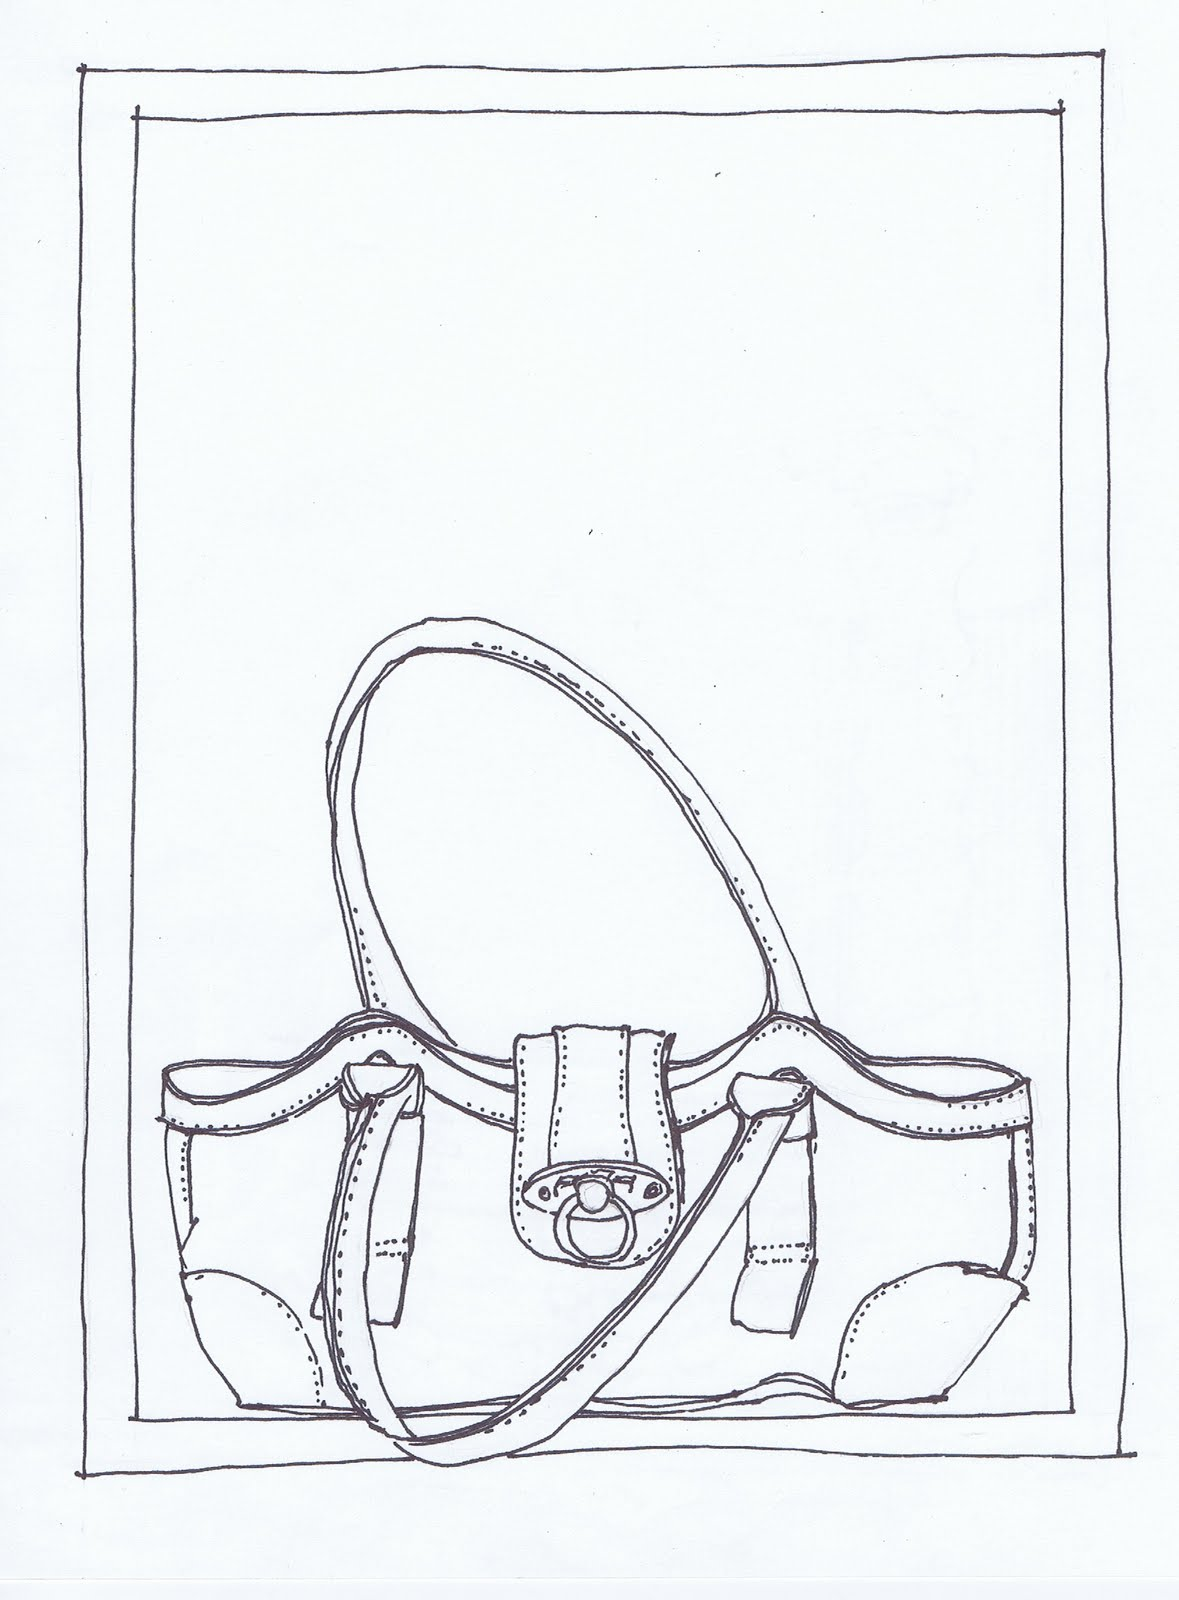 Drawn purse line drawing To bags I Day Draw